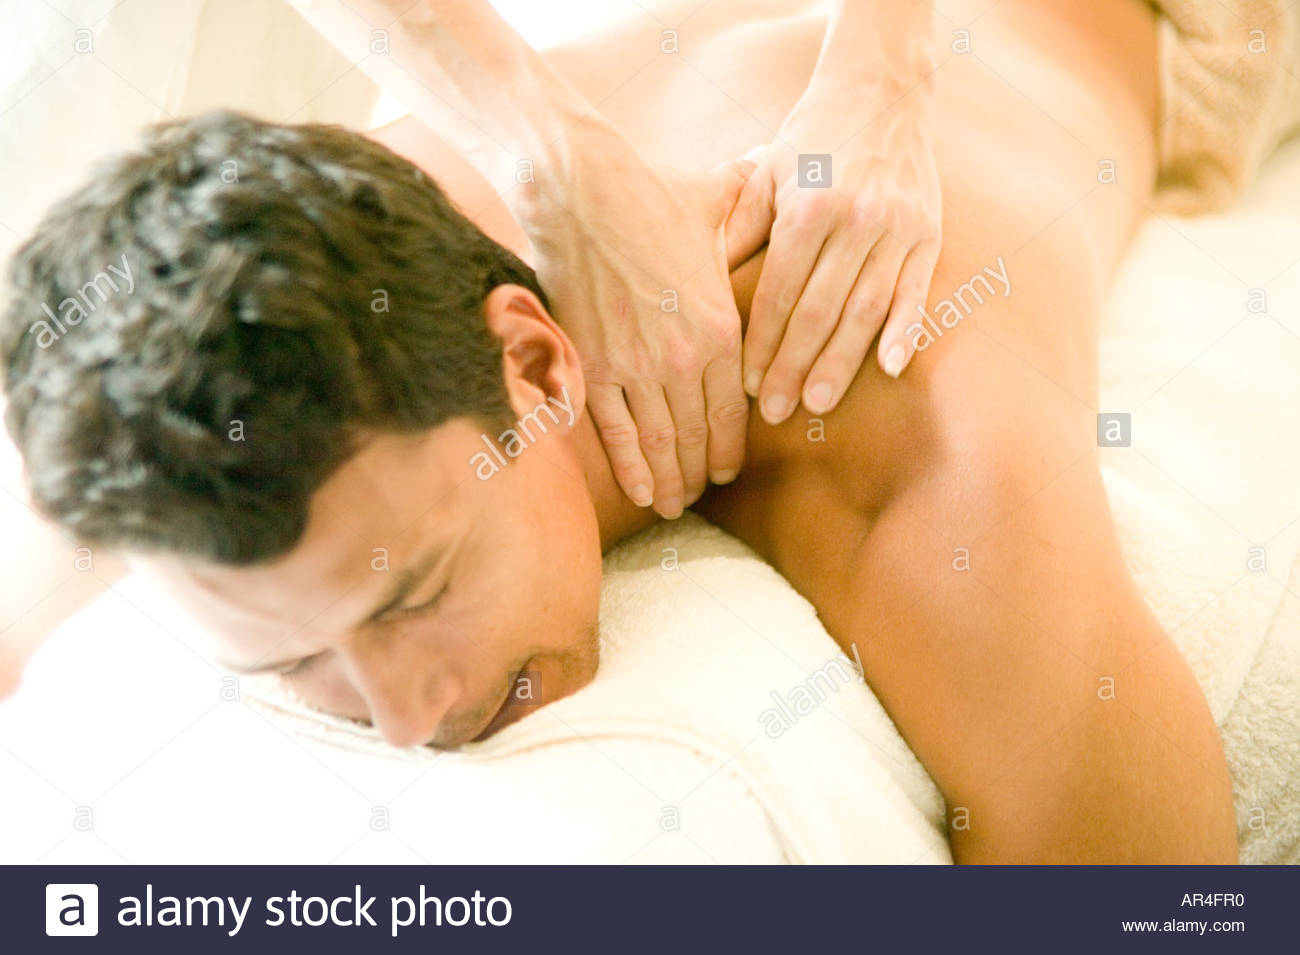 A young man receives a massage at the spaStock Photo